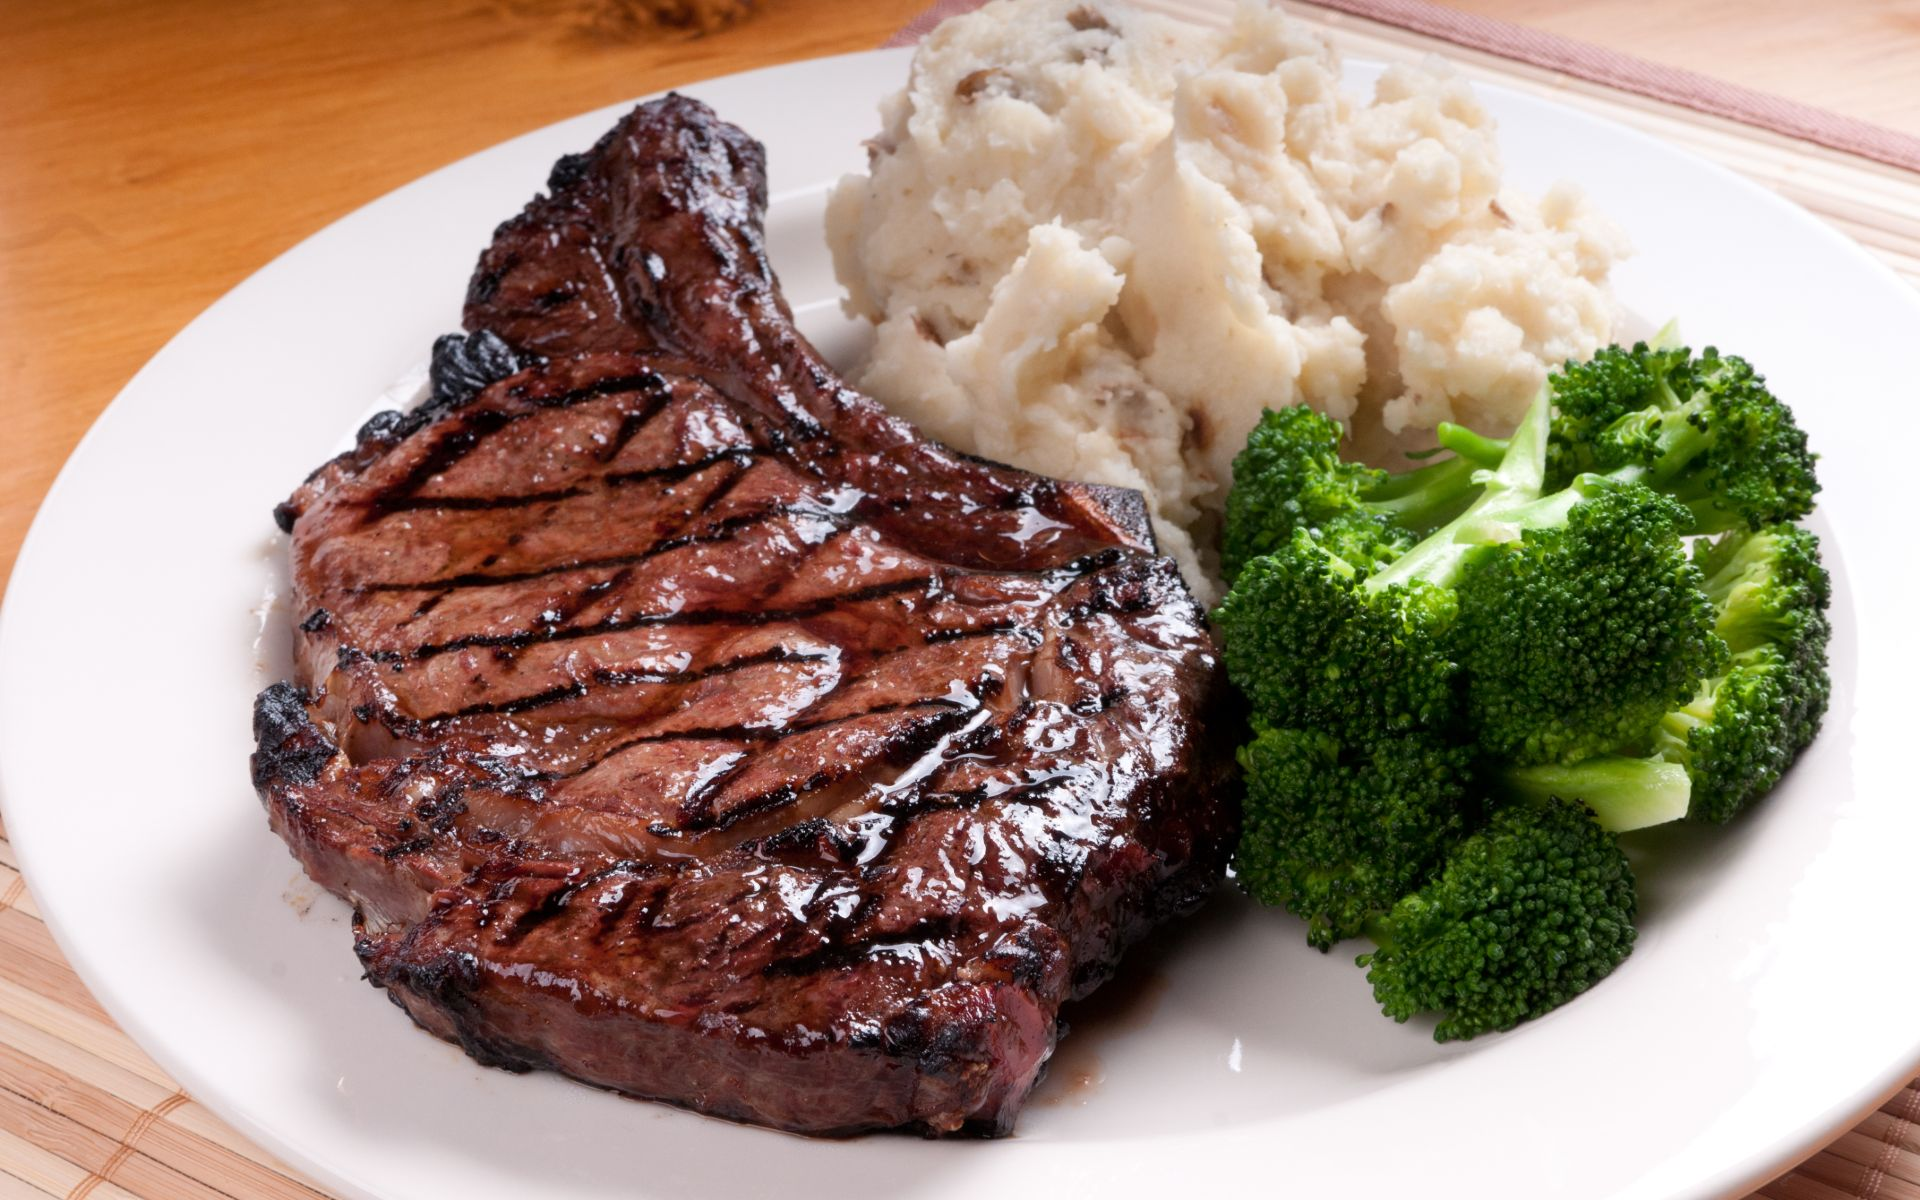 Grilled steak on a plate with mashed potatoes and broccoli